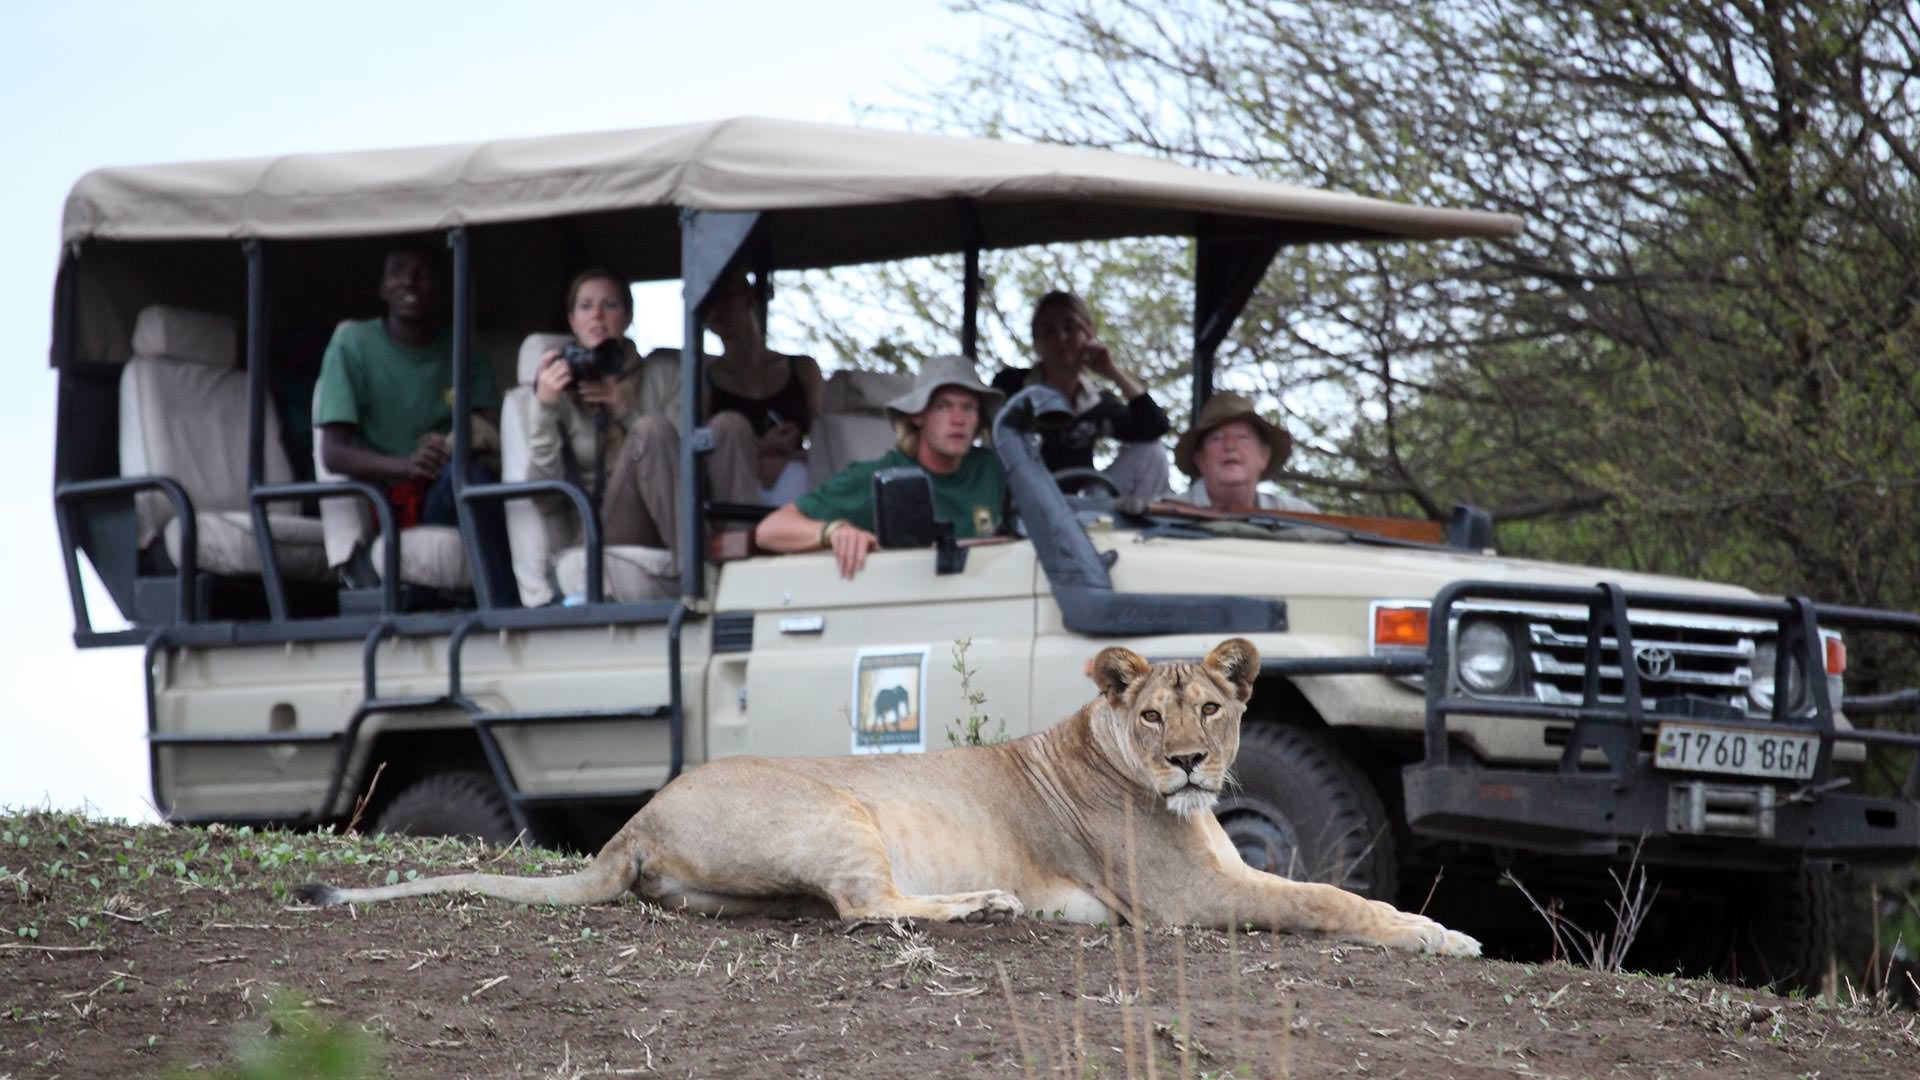 Lioness on game drive at Manyara Ranch Conservancy